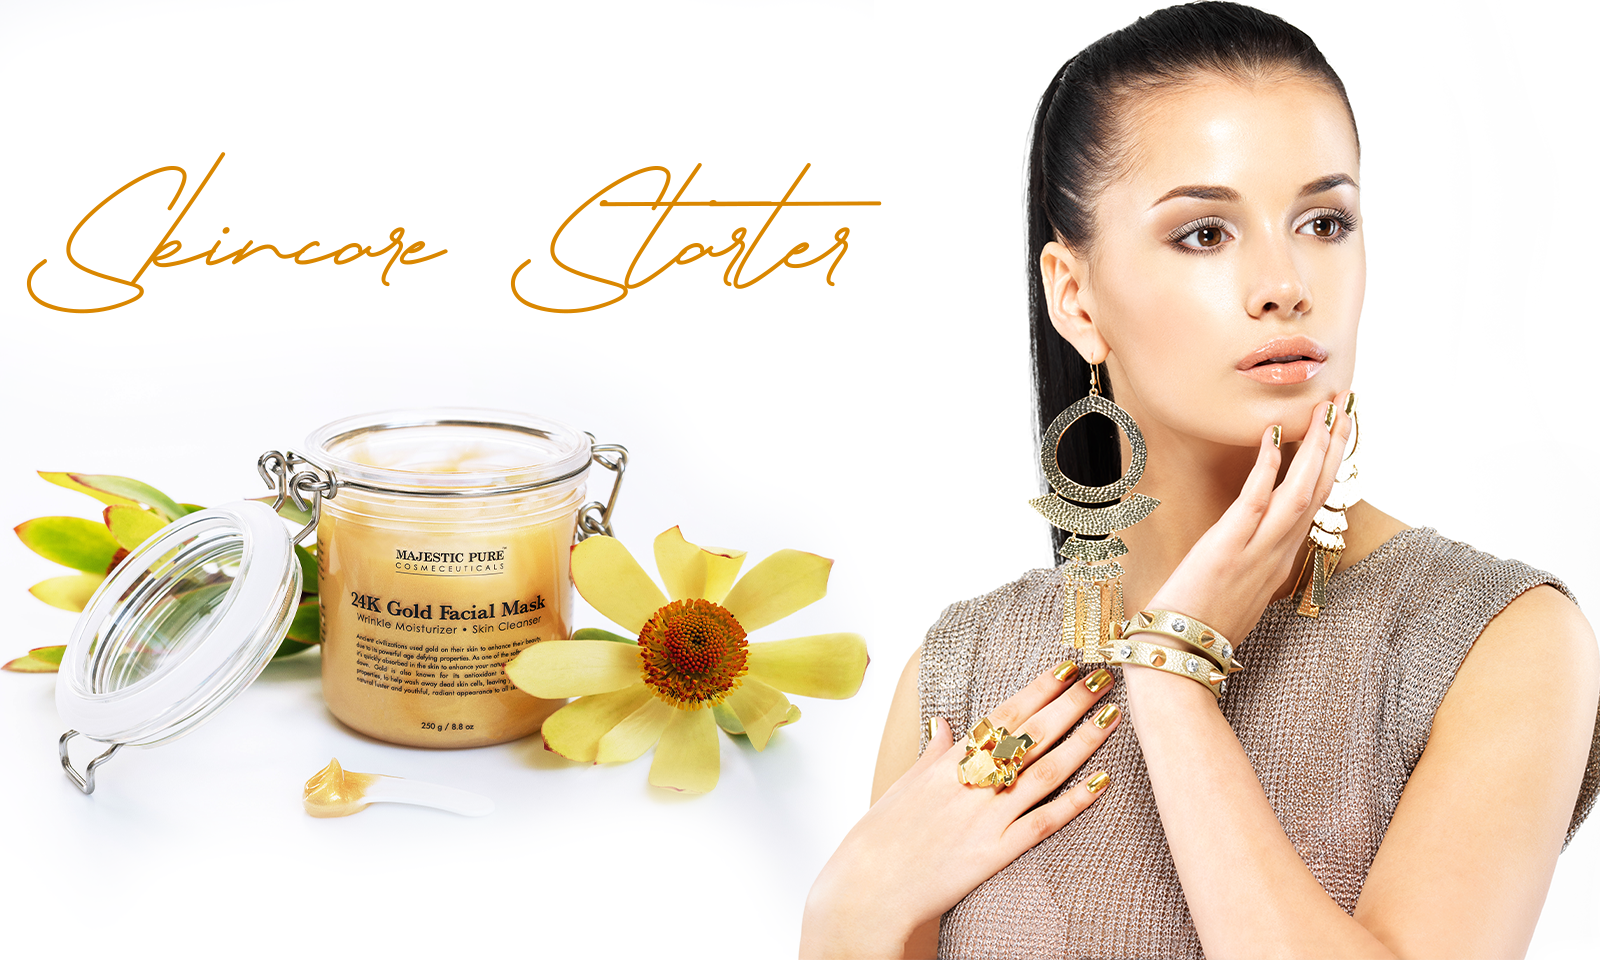 Host a Spa Day This Mother's Day - Majestic Pure 24K gold facial mask